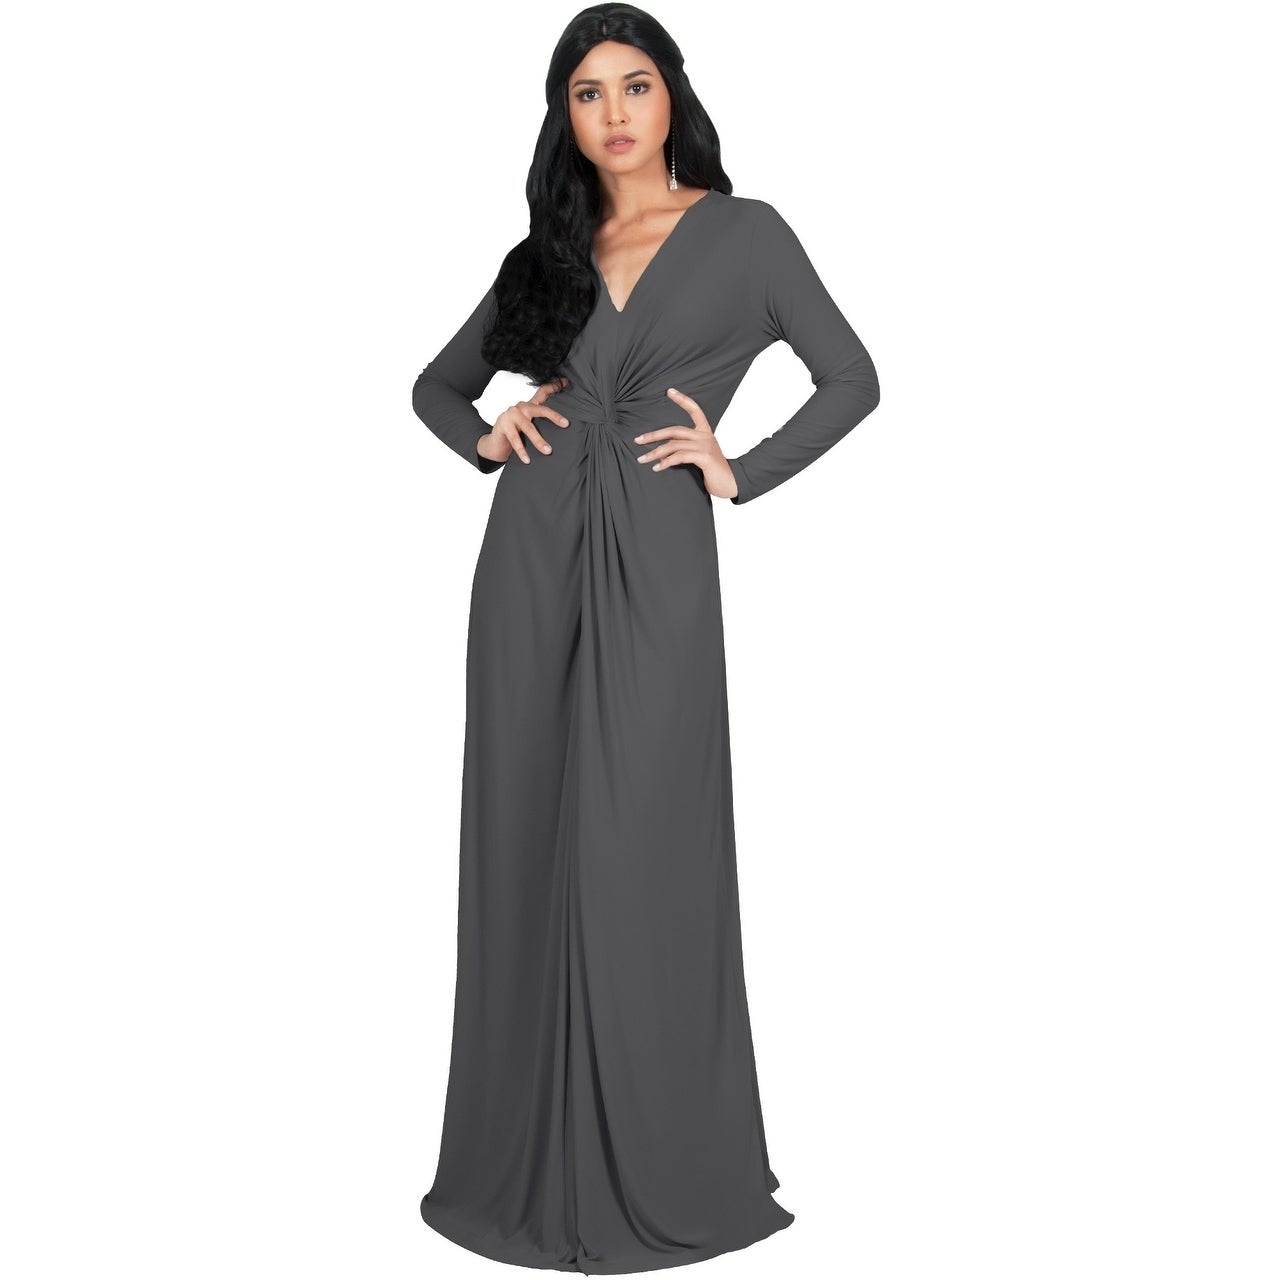 c98f737eb1 Shop KOH KOH Womens Semi Formal Flowy Fall Long Sleeve Gowns Maxi ...